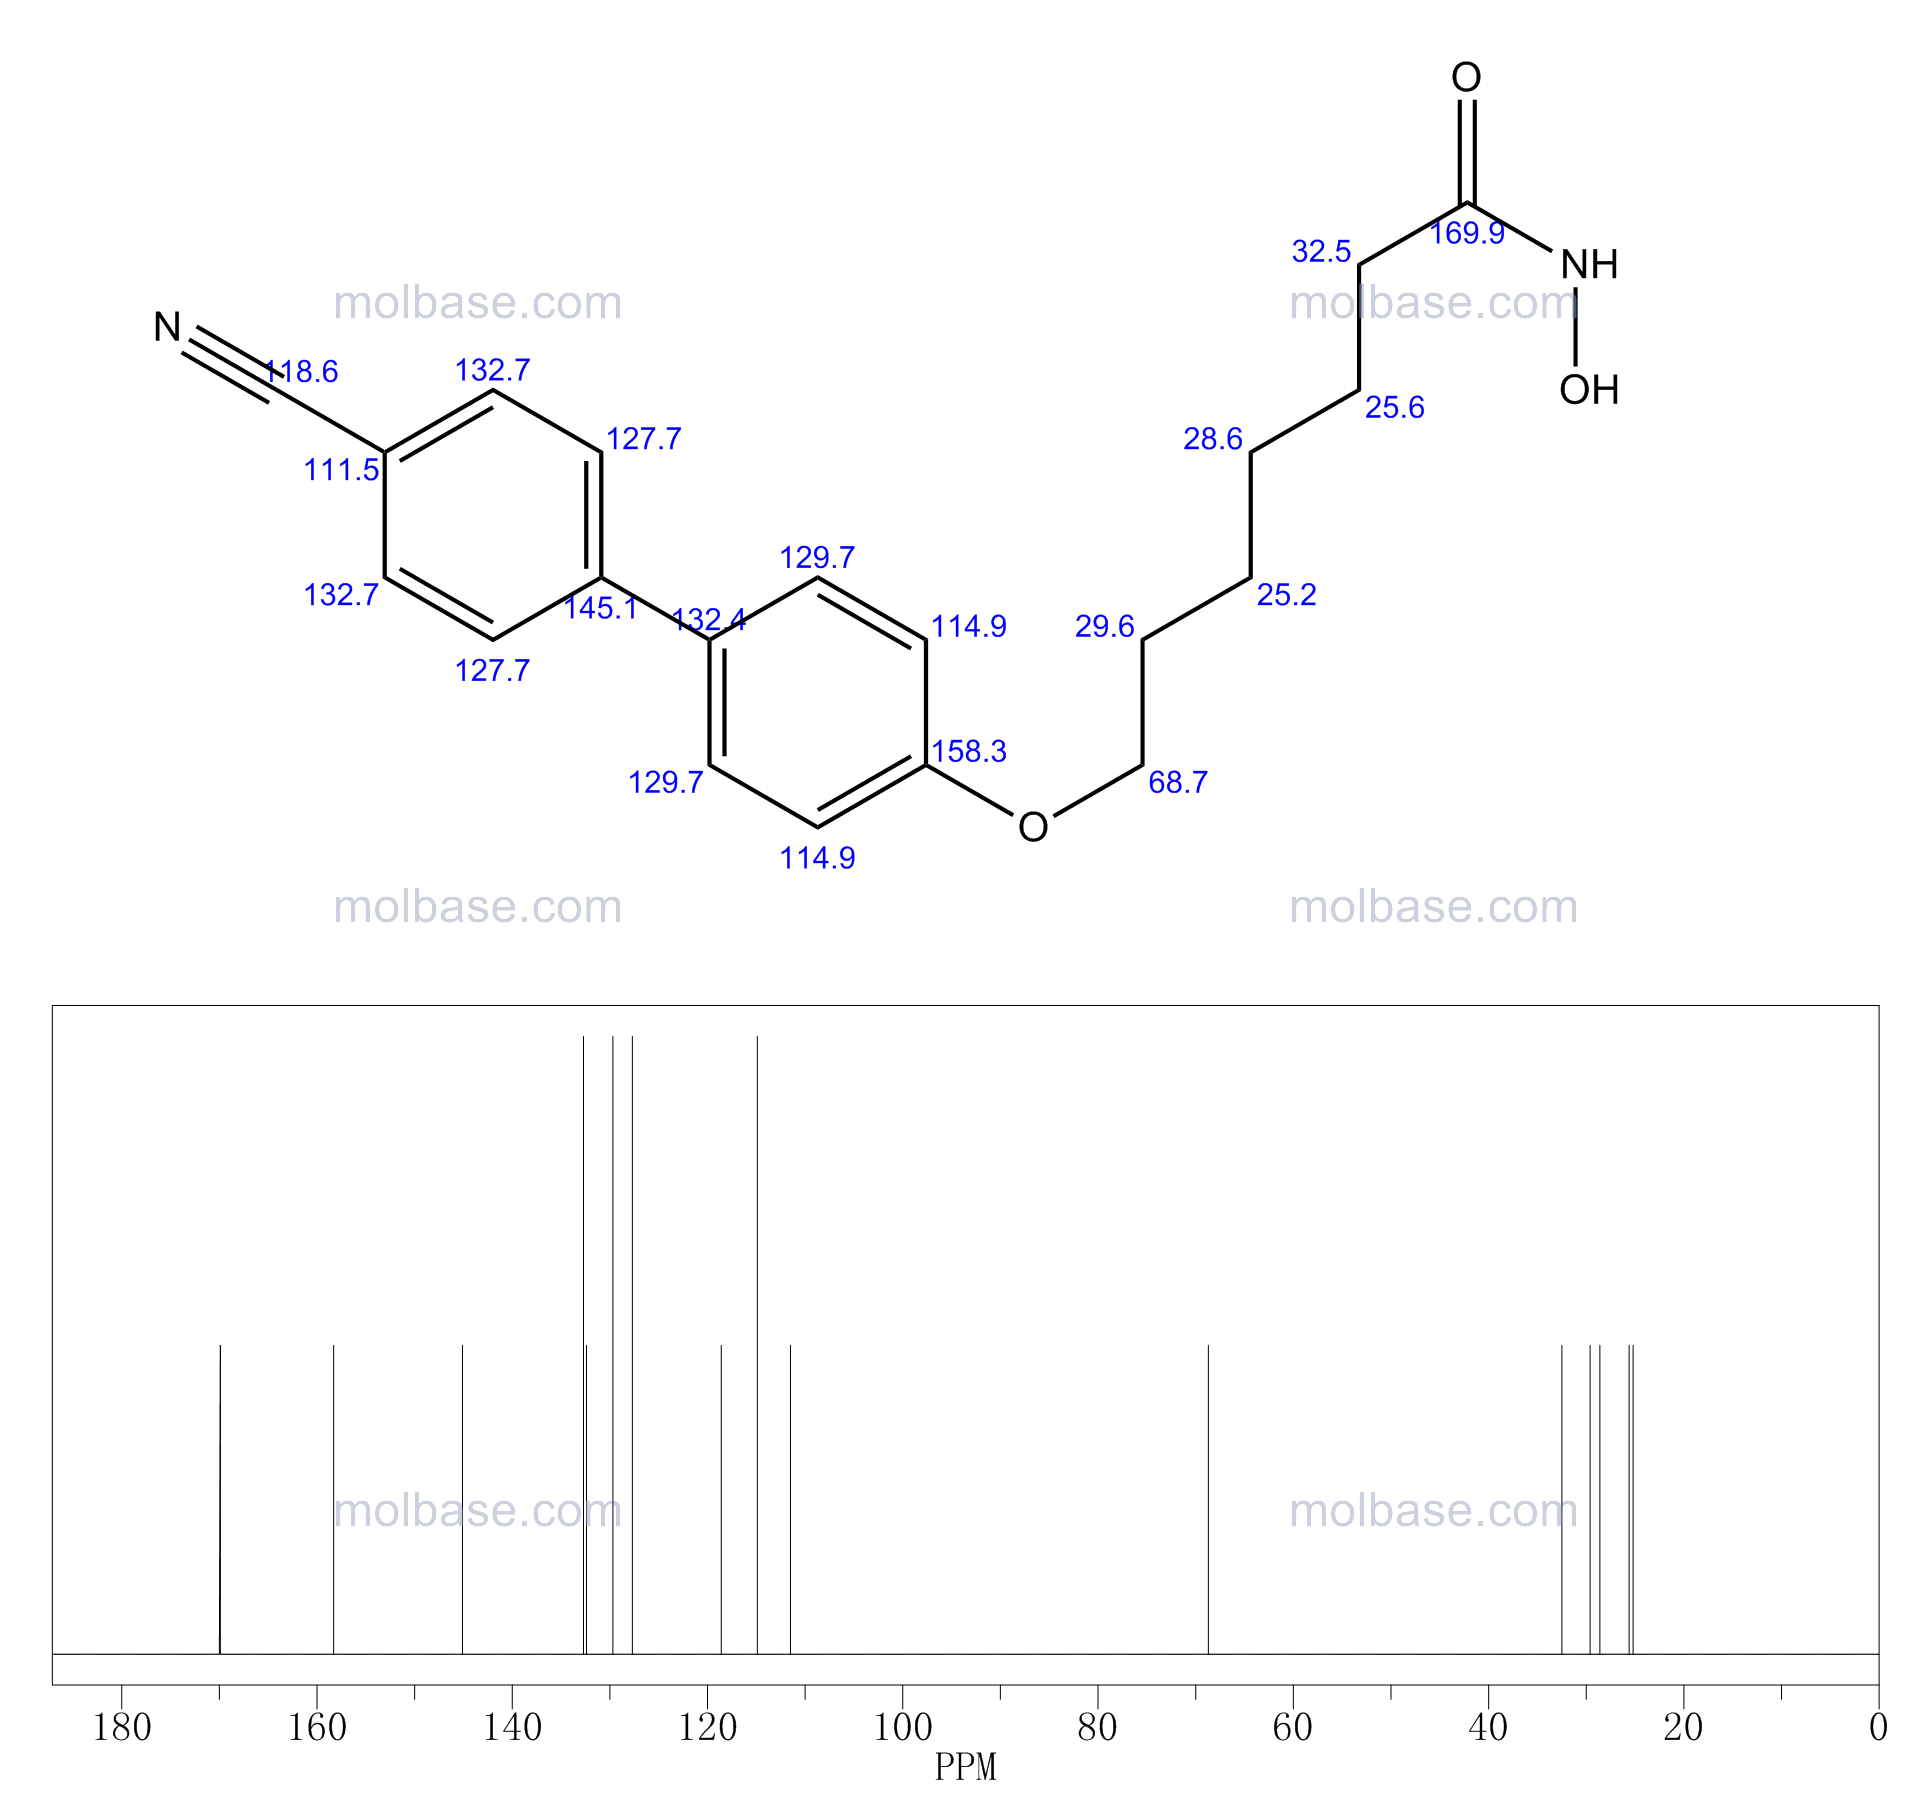 7-[4-(4-cyanophenyl)phenoxy]-N-hydroxyheptanamide NMR spectra analysis, Chemical CAS NO. 191228-04-3 NMR spectral analysis, 7-[4-(4-cyanophenyl)phenoxy]-N-hydroxyheptanamide C-NMR spectrum